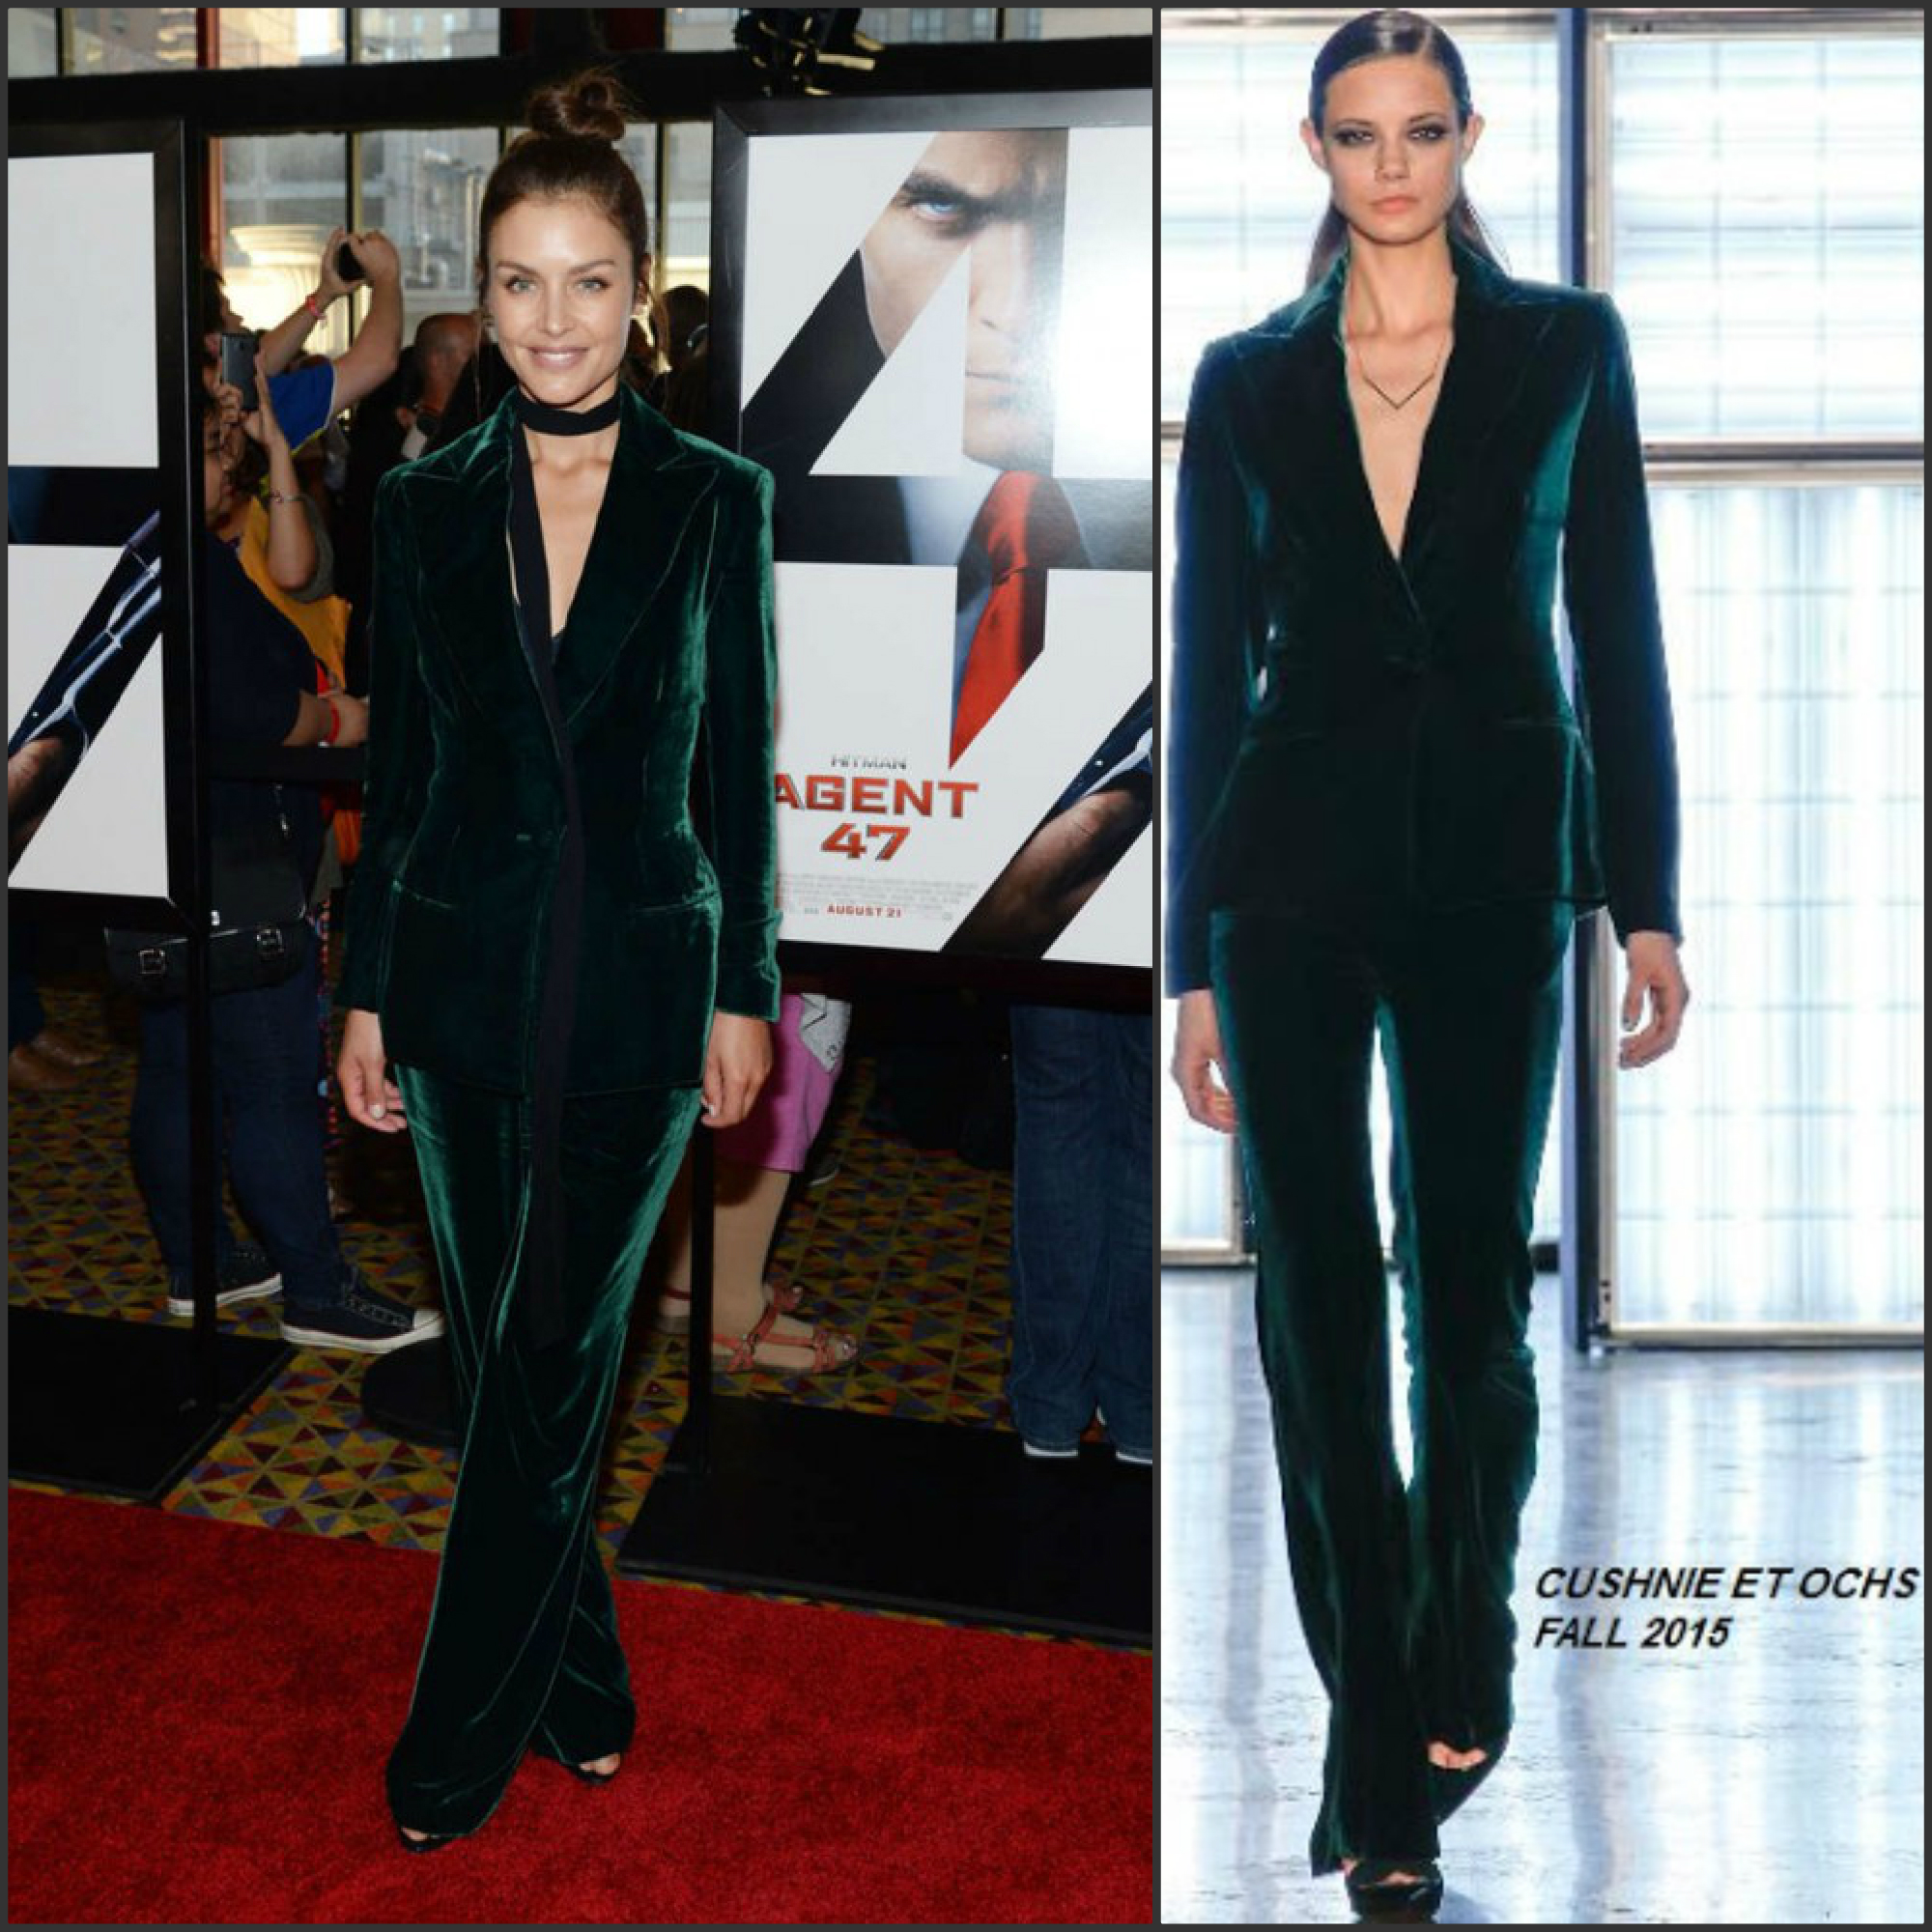 hannah-ware-in-cushnie-et-ochs-at-the-hitman-agent-47-new-york-premiere